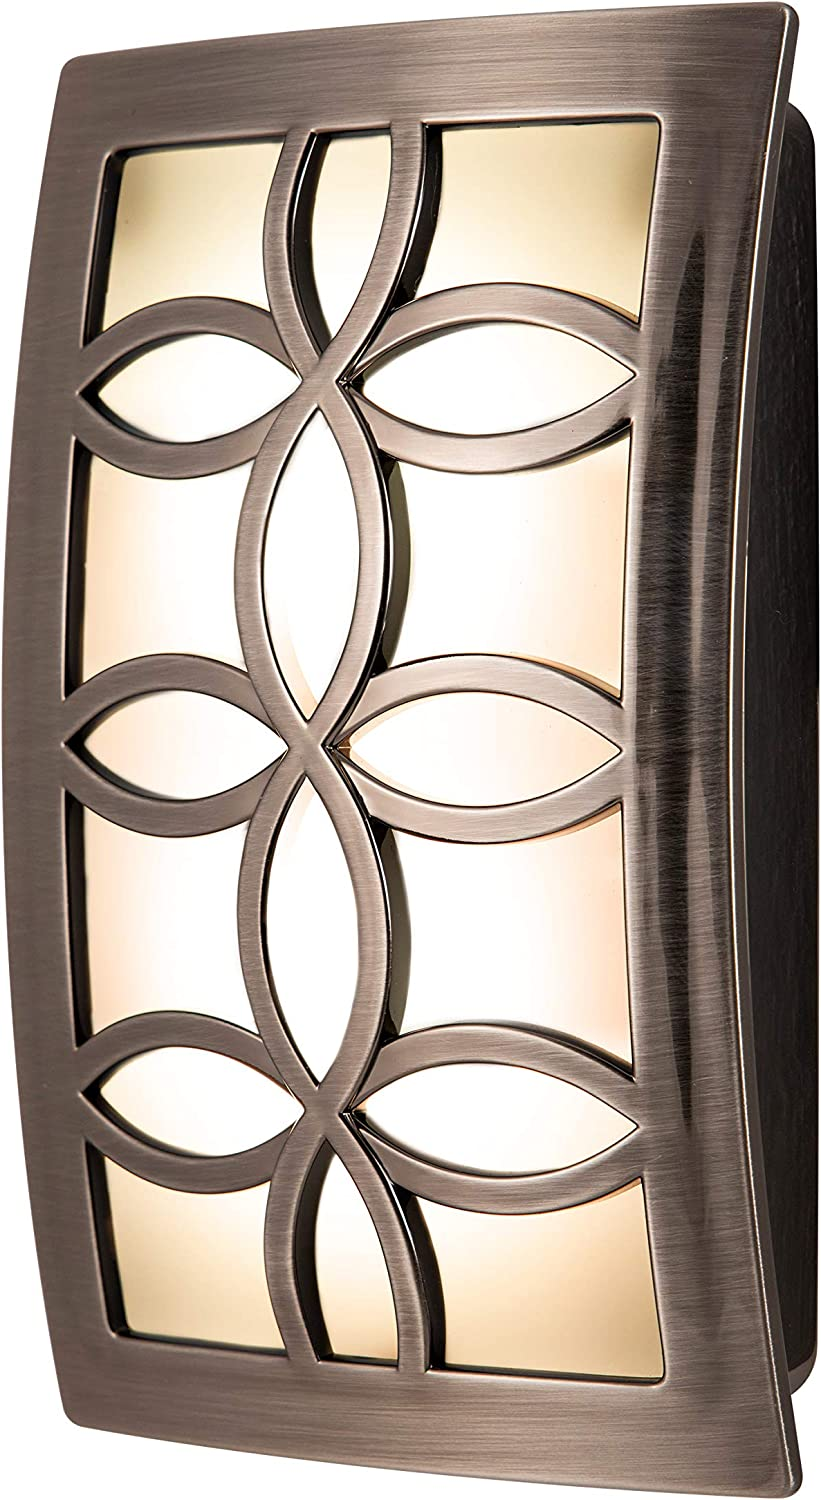 GE LED CoverLite Night Light, Plug-In, Soft White Light, Light Sensing, Auto On/Off, Ideal for Entryway, Hallway, Kitchen, Bathroom, Bedroom, Stairway, Office, & More, Brushed Nickel Finish, 11257